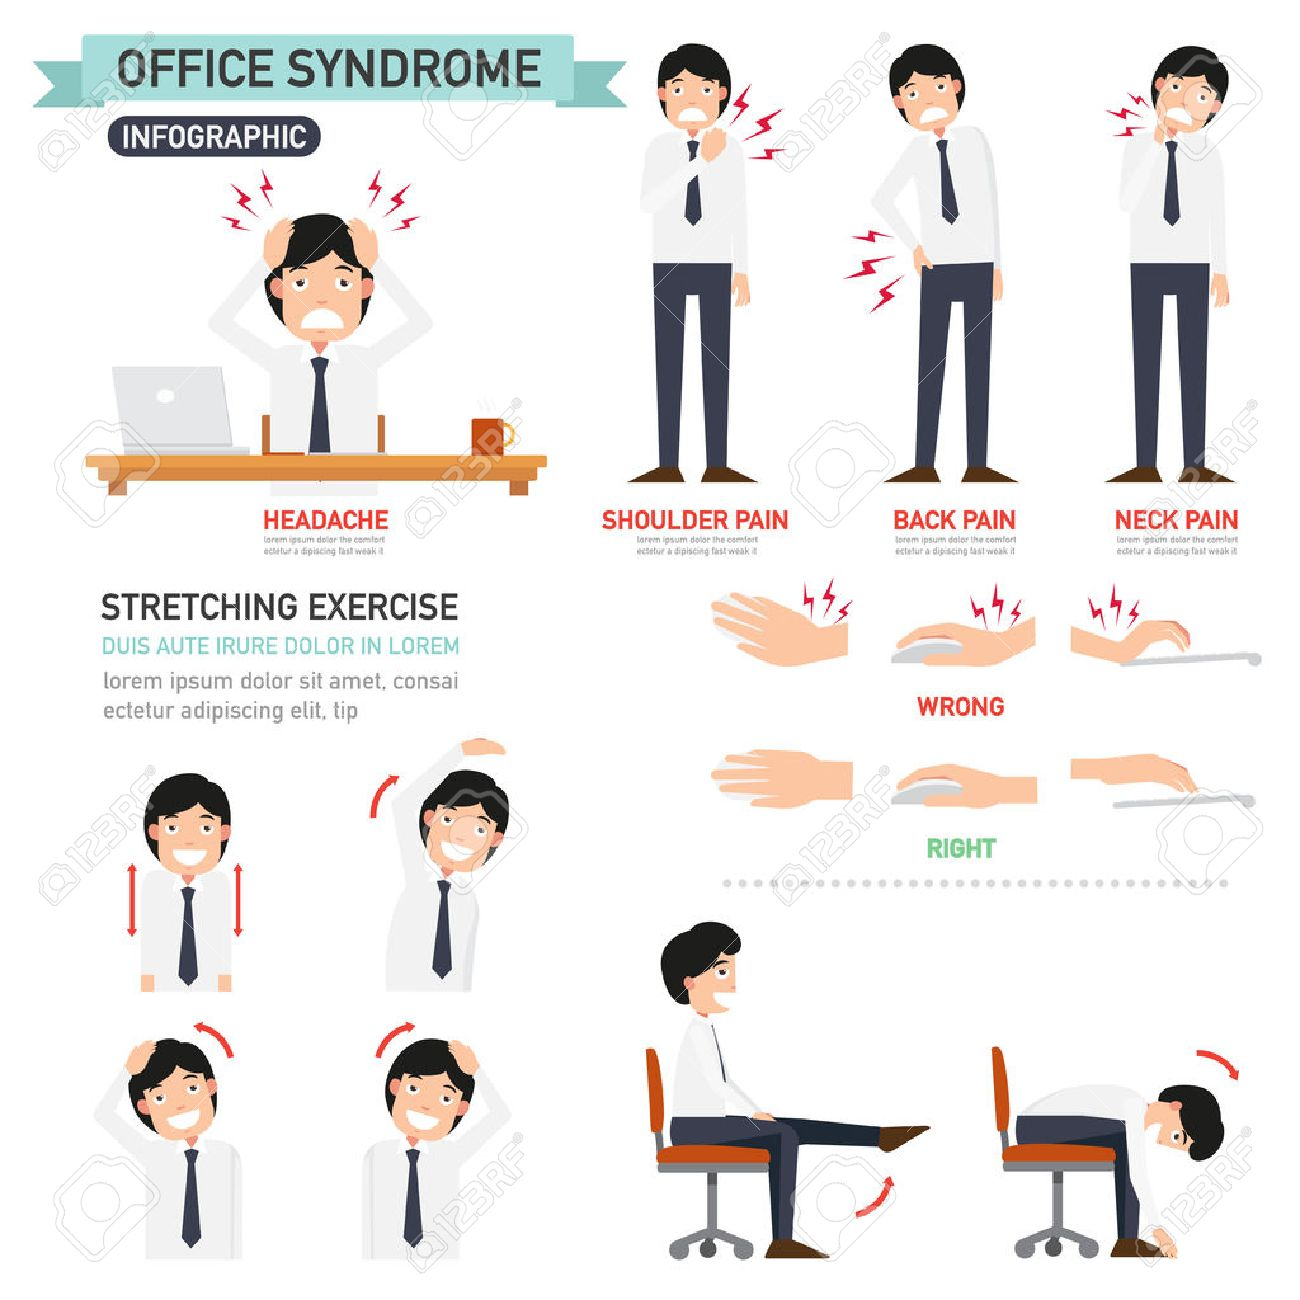 office syndrome infographic,vector illustration - 43129474